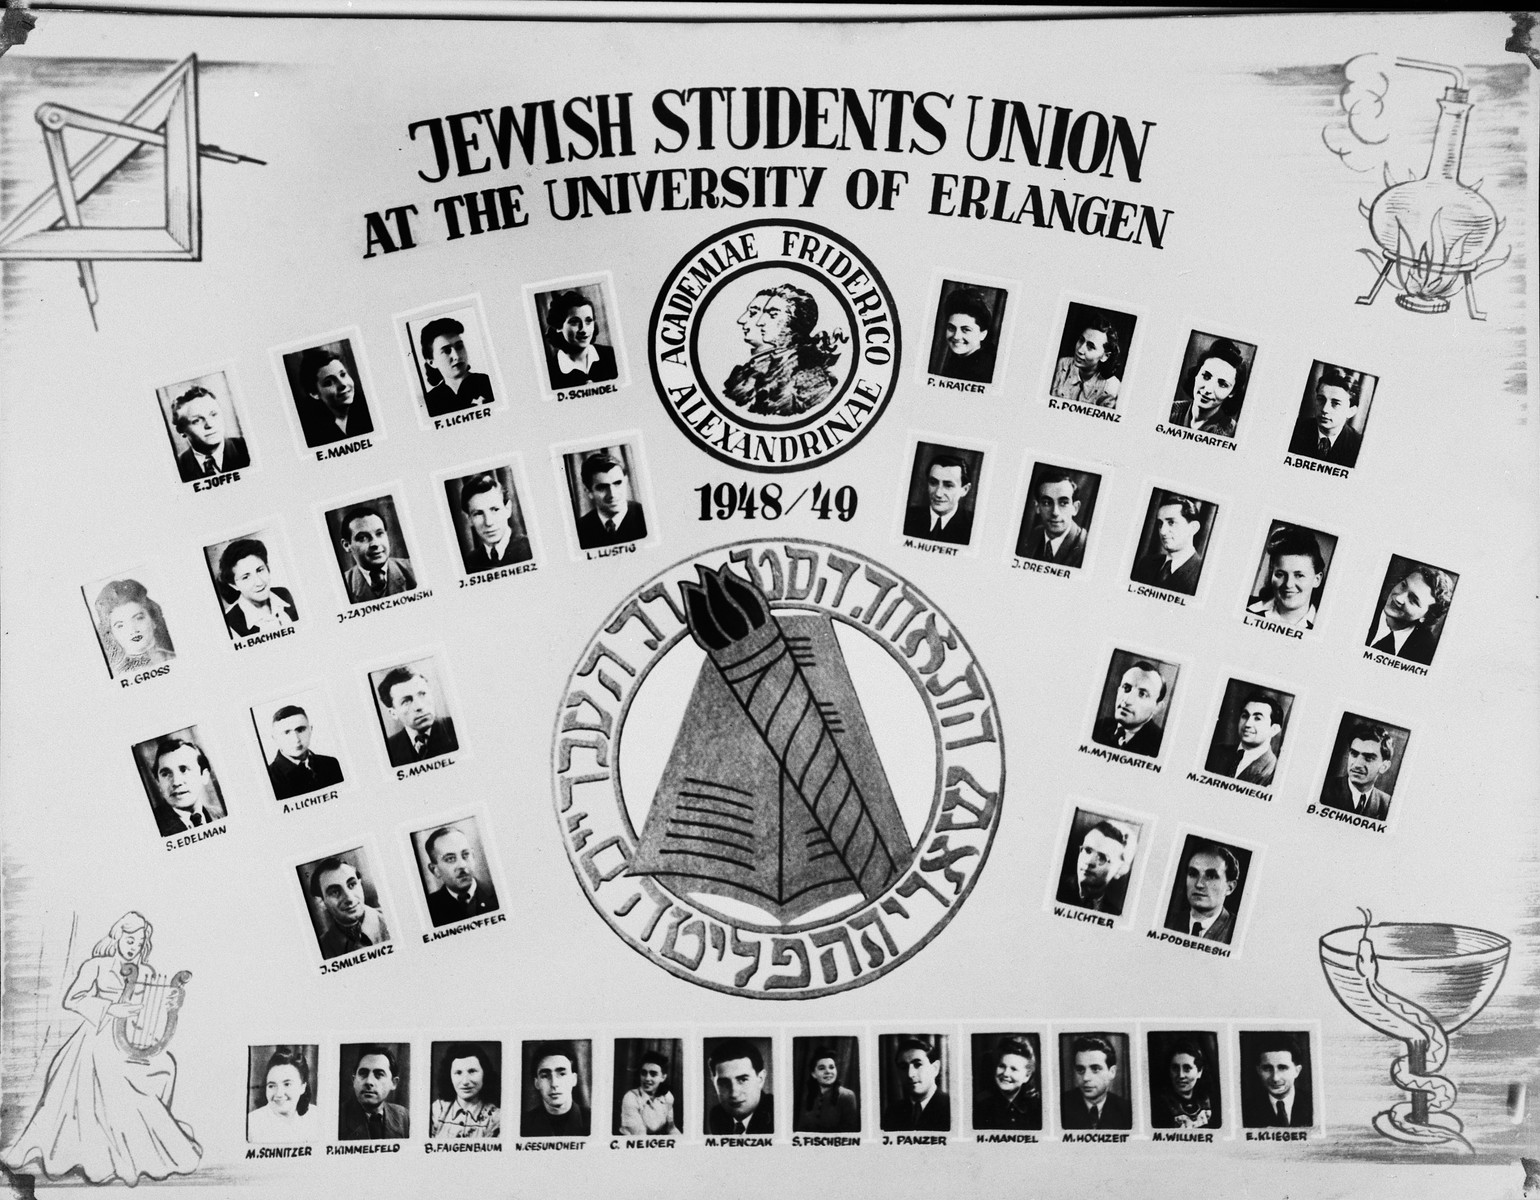 Composite photograph of the members of the Jewish Student Union at the University of Erlangen.  Among those pictured is the president of the Jewish Student Union, Paul Lustig (fourth row, fifth from the left).  Marion Hupert (4th row, fifth from the right) became a dentist as did John Silberherz (later Saunders), fourth from the left.  Renata Gross (later Smilo) fourth row, far left became an endocrinologist.  M. Hochzeit (first row, third from right) became a publisher.